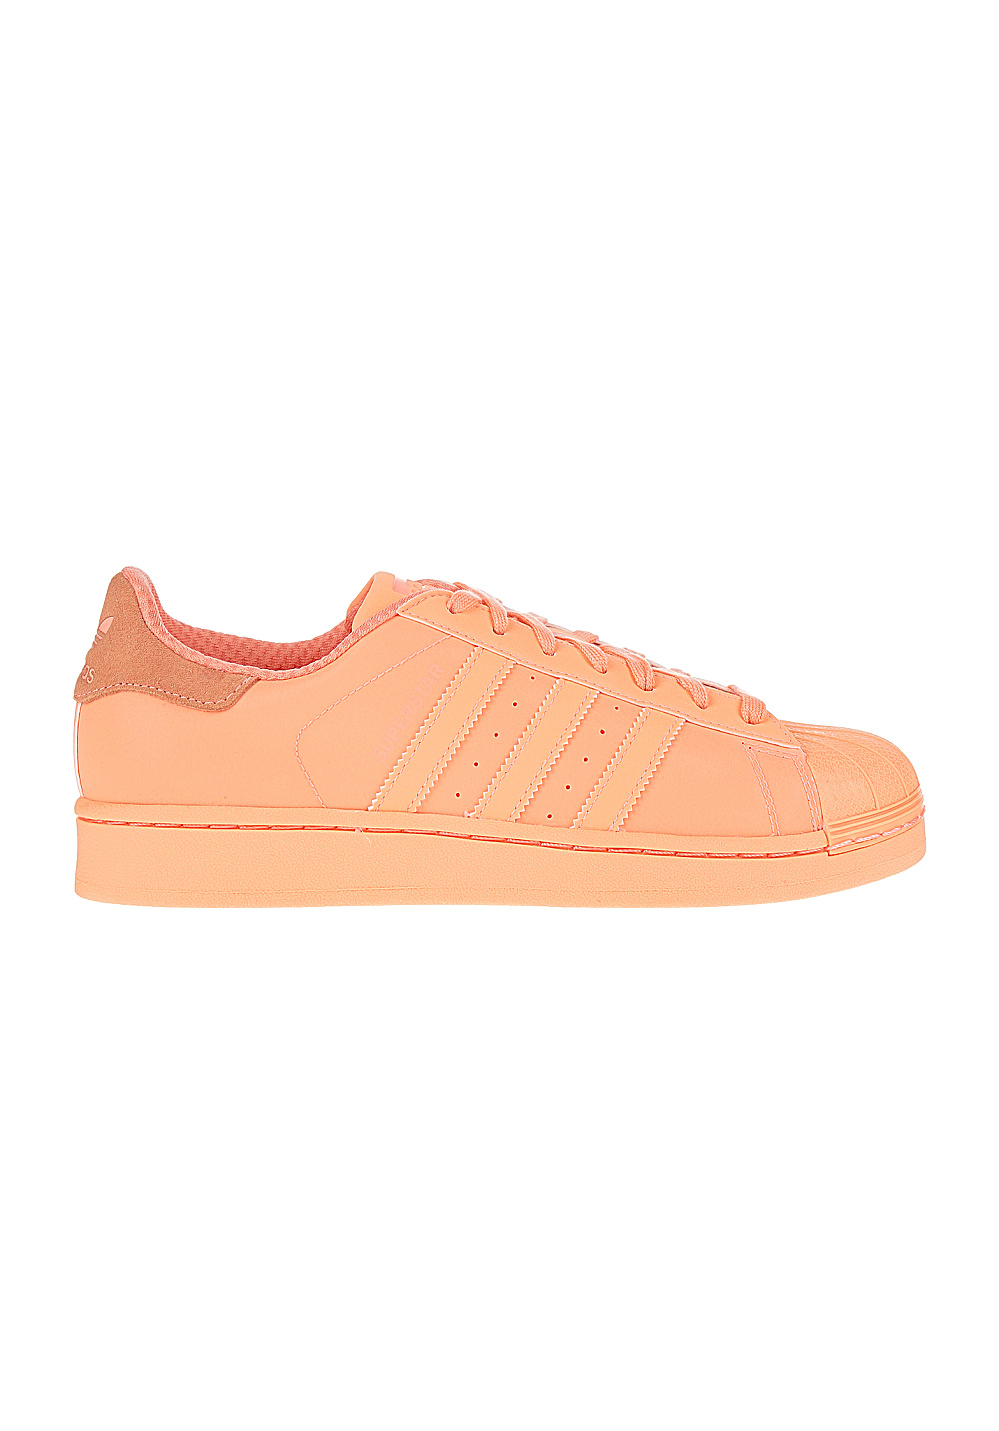 adidas originals superstar donna arancione